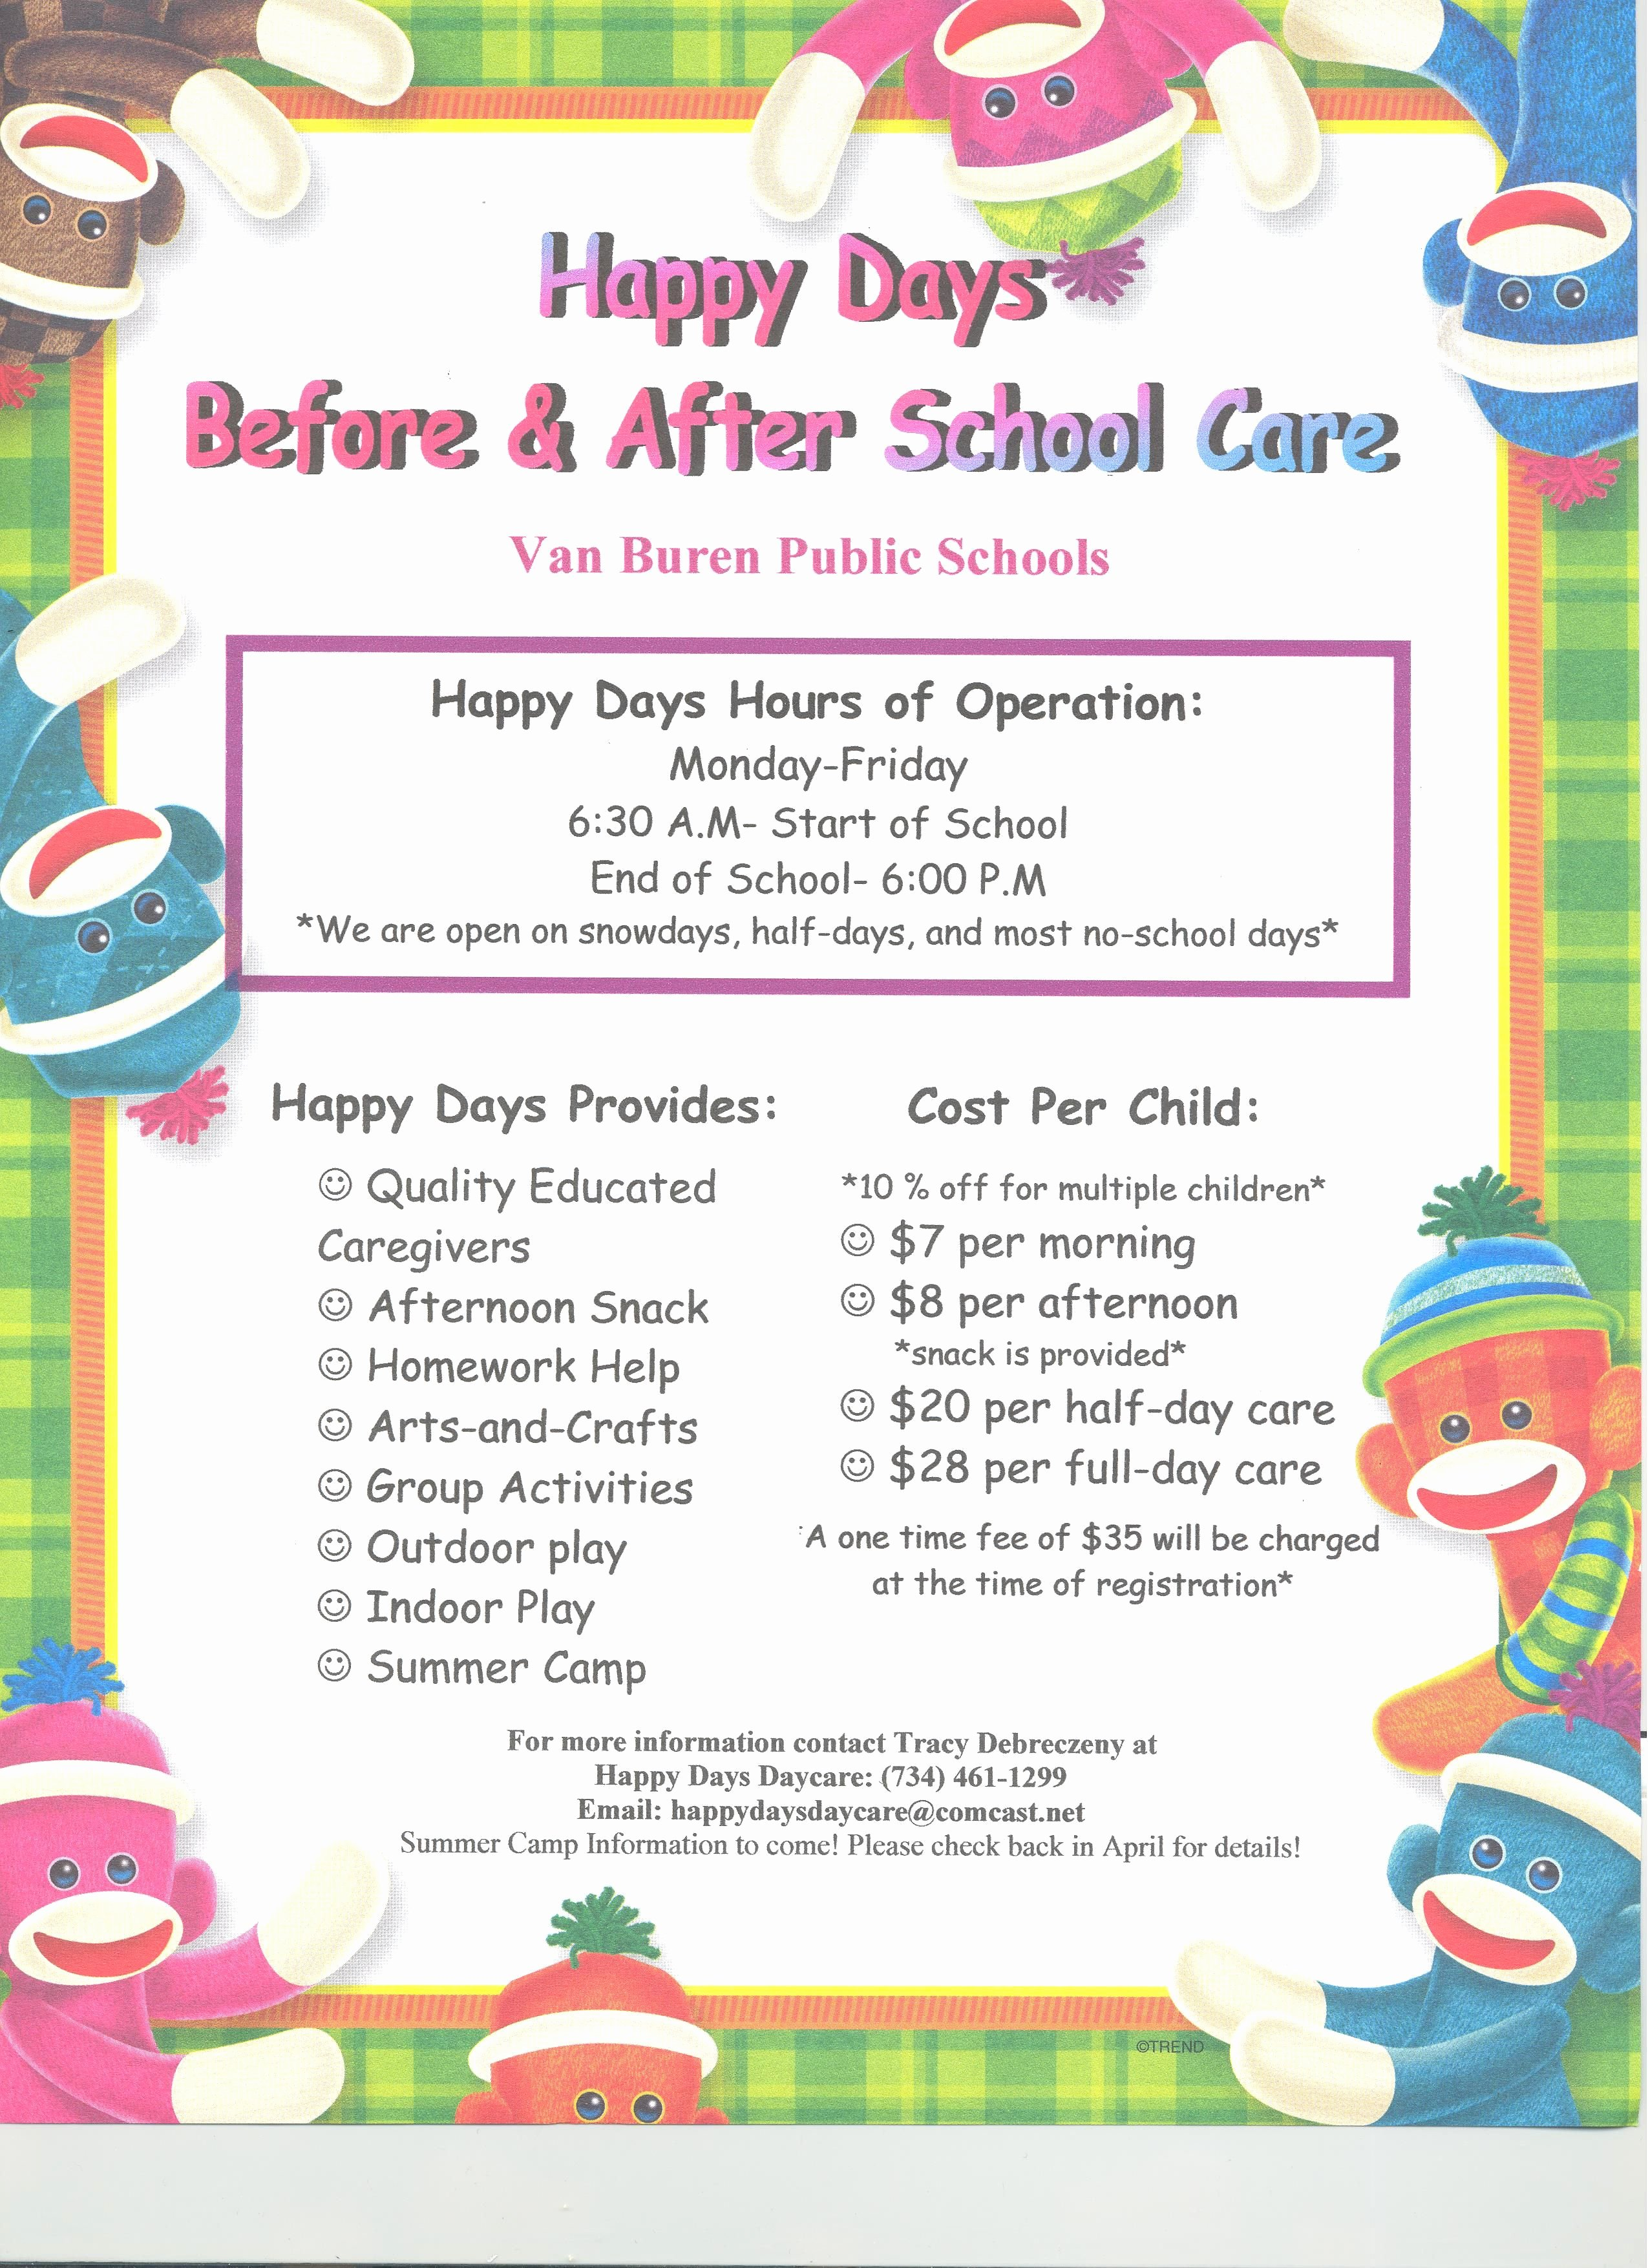 Child Care Flyer Template Inspirational Please See the Happy Days Day Care Flyer